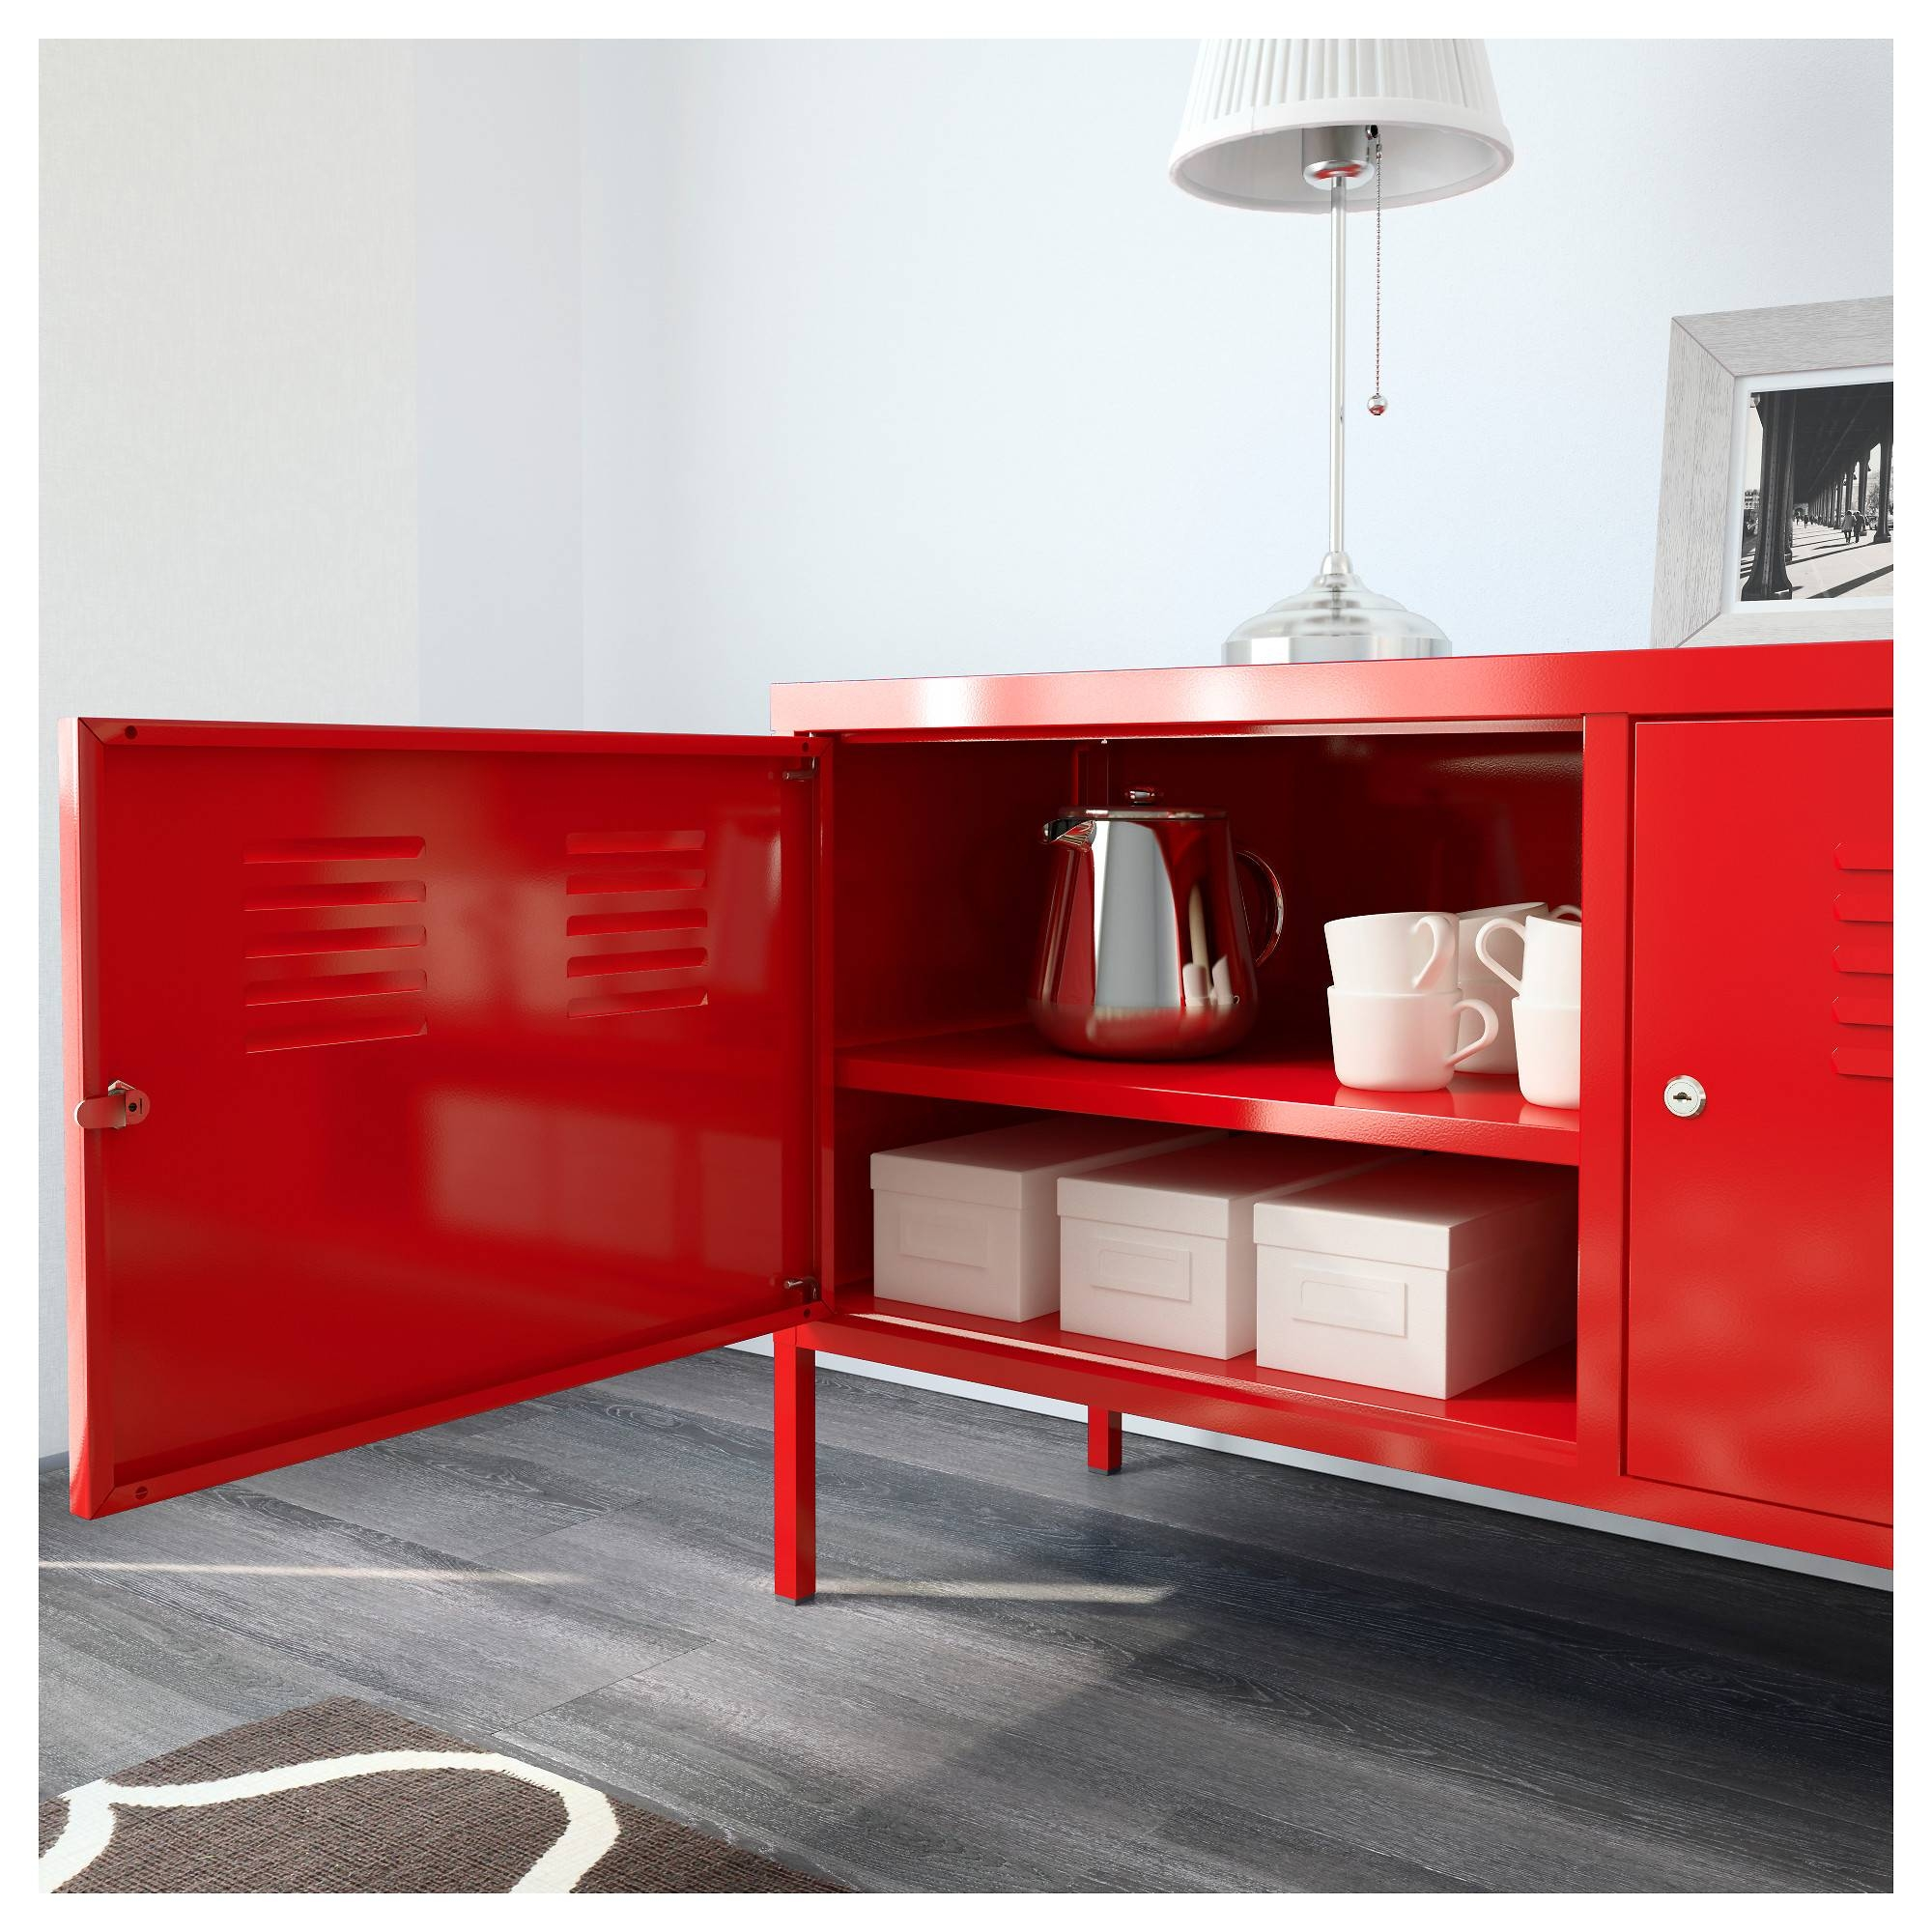 Ikea Ps Cabinet - Red - Ikea throughout Red Sideboards (Image 13 of 30)